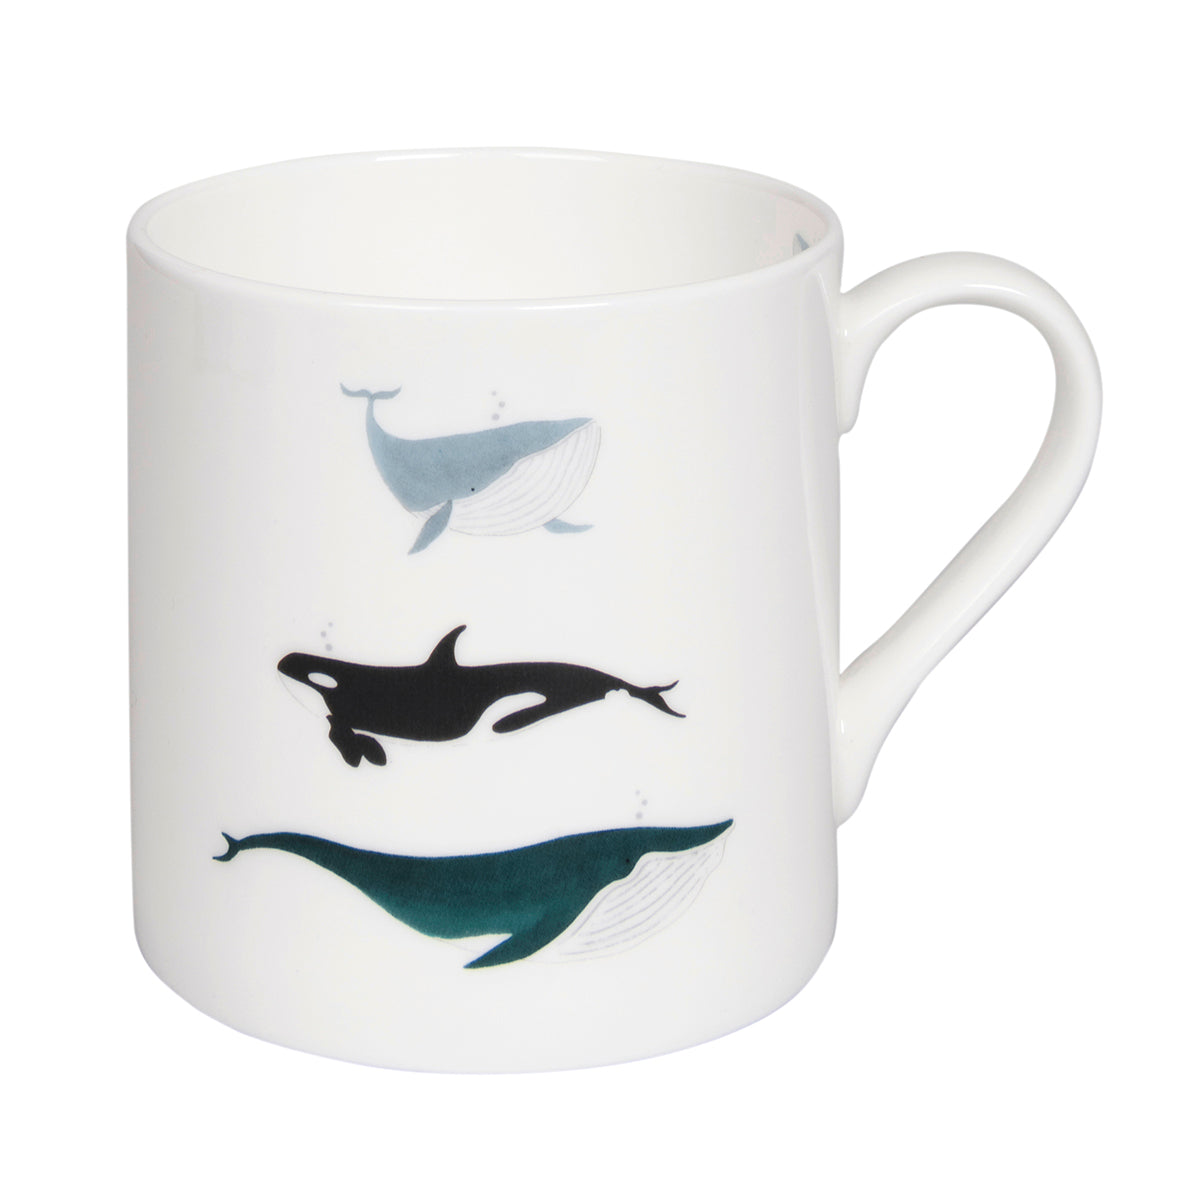 Whales Solo Fine Bone China Mug by Sophie Allport